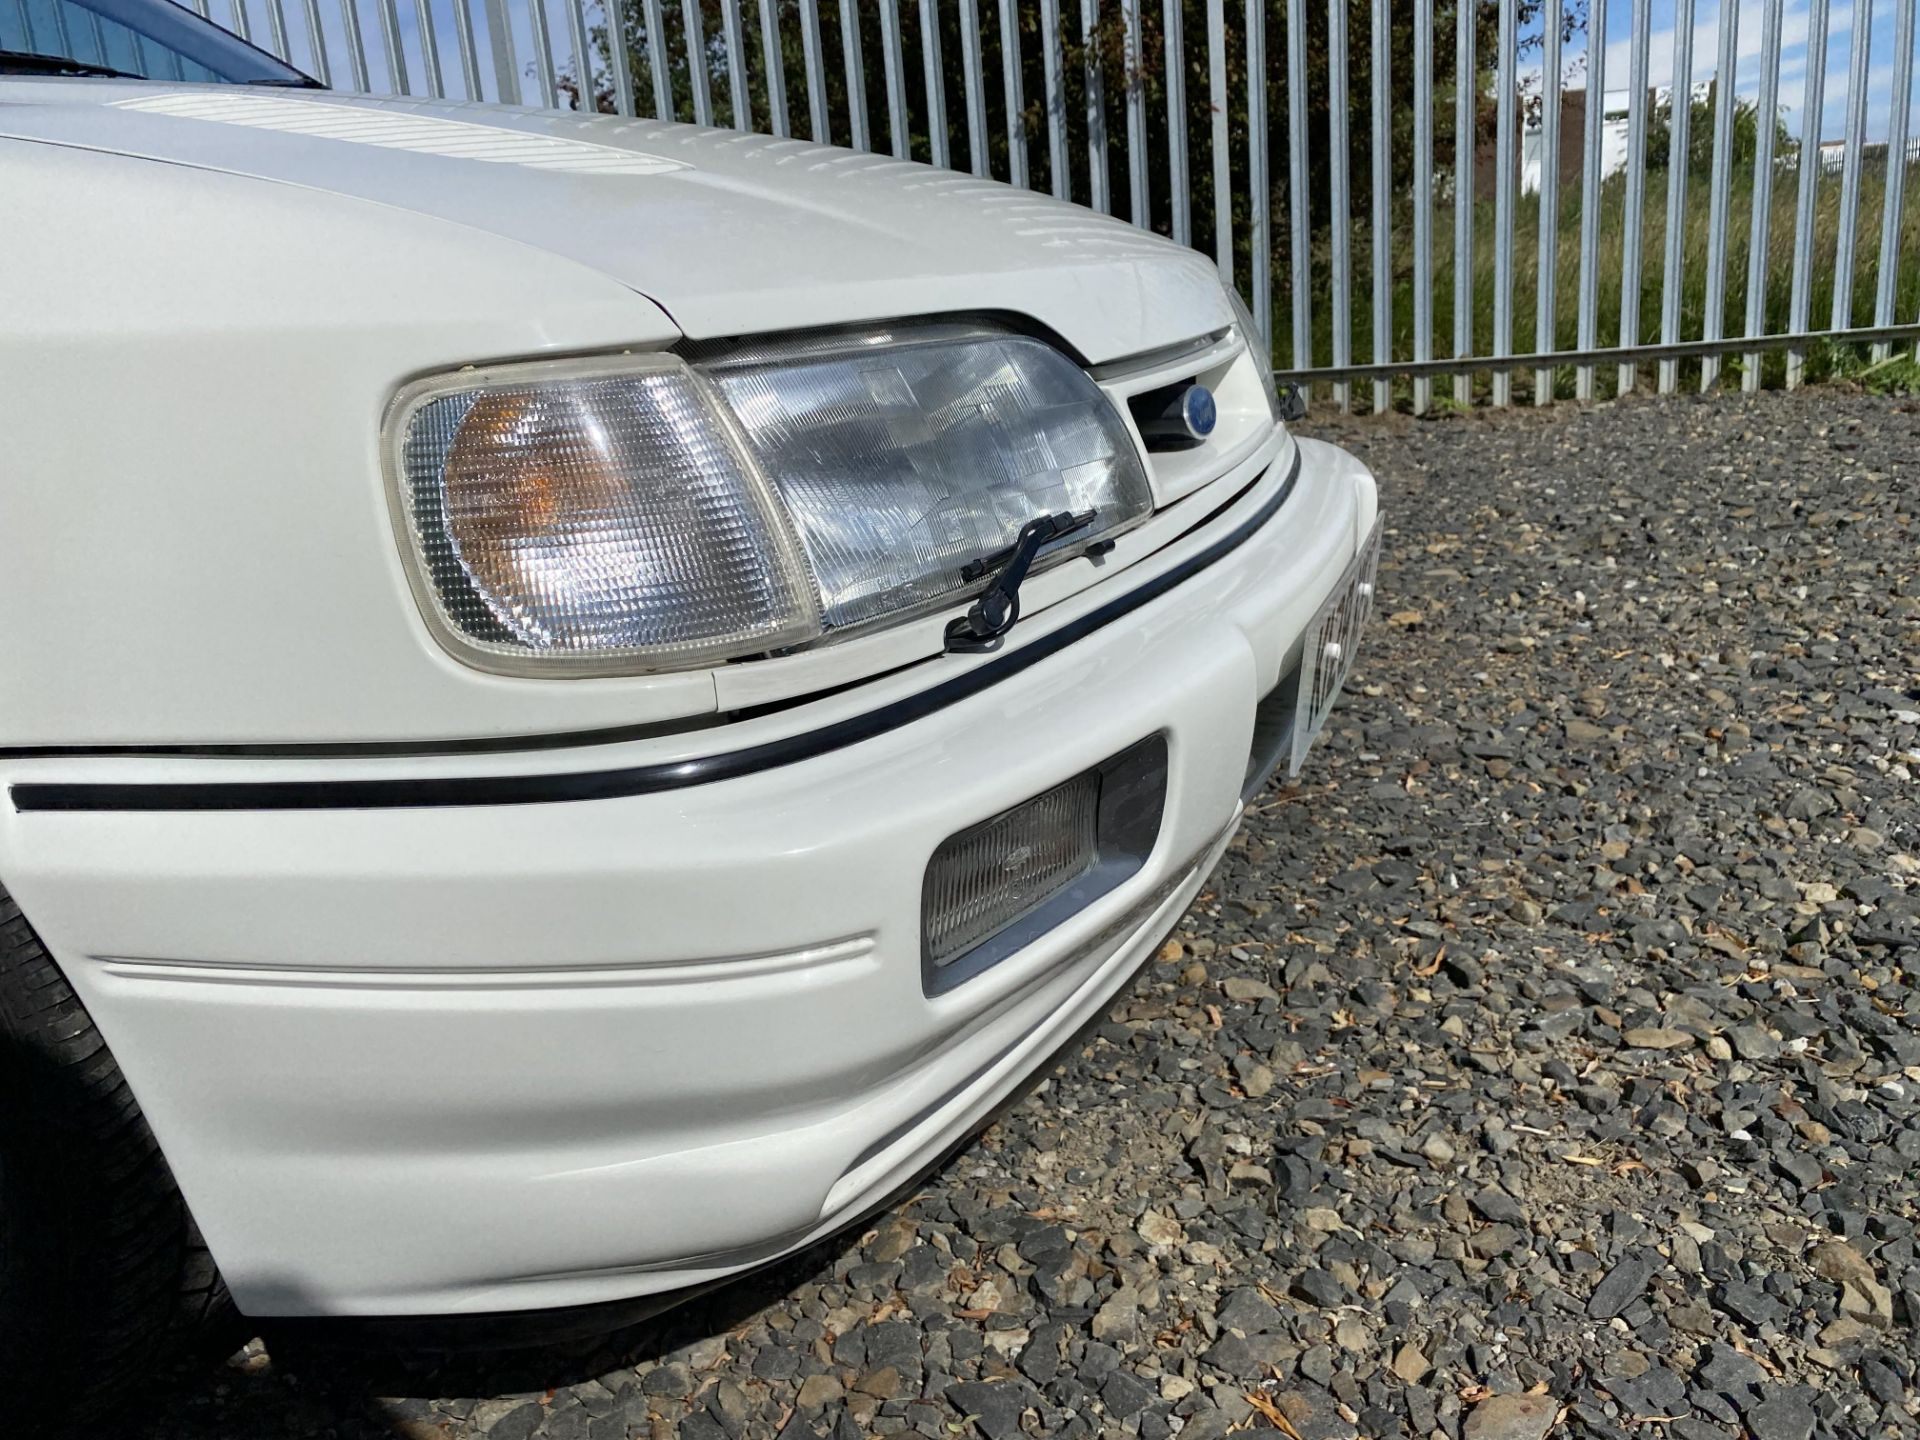 Ford Sierra Sapphire Cosworth 4x4 - Image 19 of 55